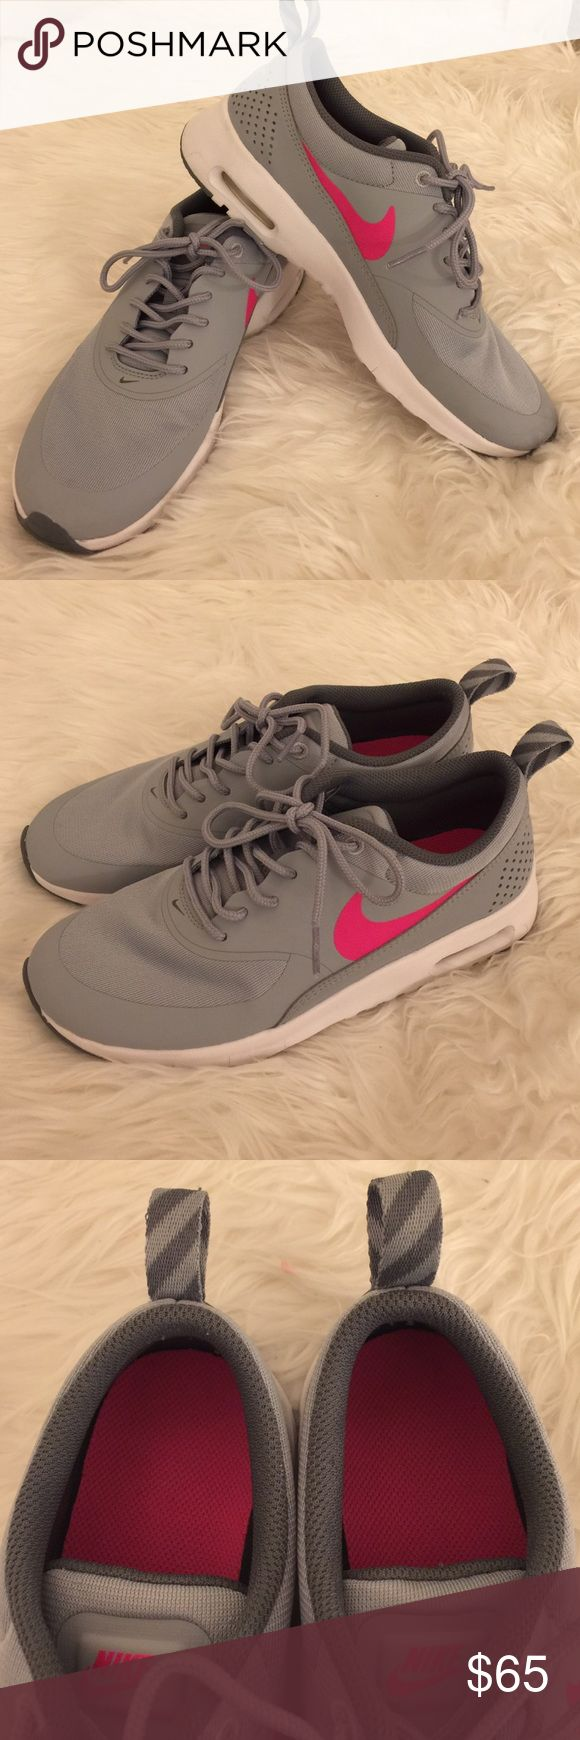 Nike Air Max Thea Sneakers Cutest and most comfortable sneakers! Light grey leather-like material and mesh with hot pink detailing. In great condition! Only worn once. Size 5.5Y which converts to a Women's size 7. Nike Shoes Athletic Shoes